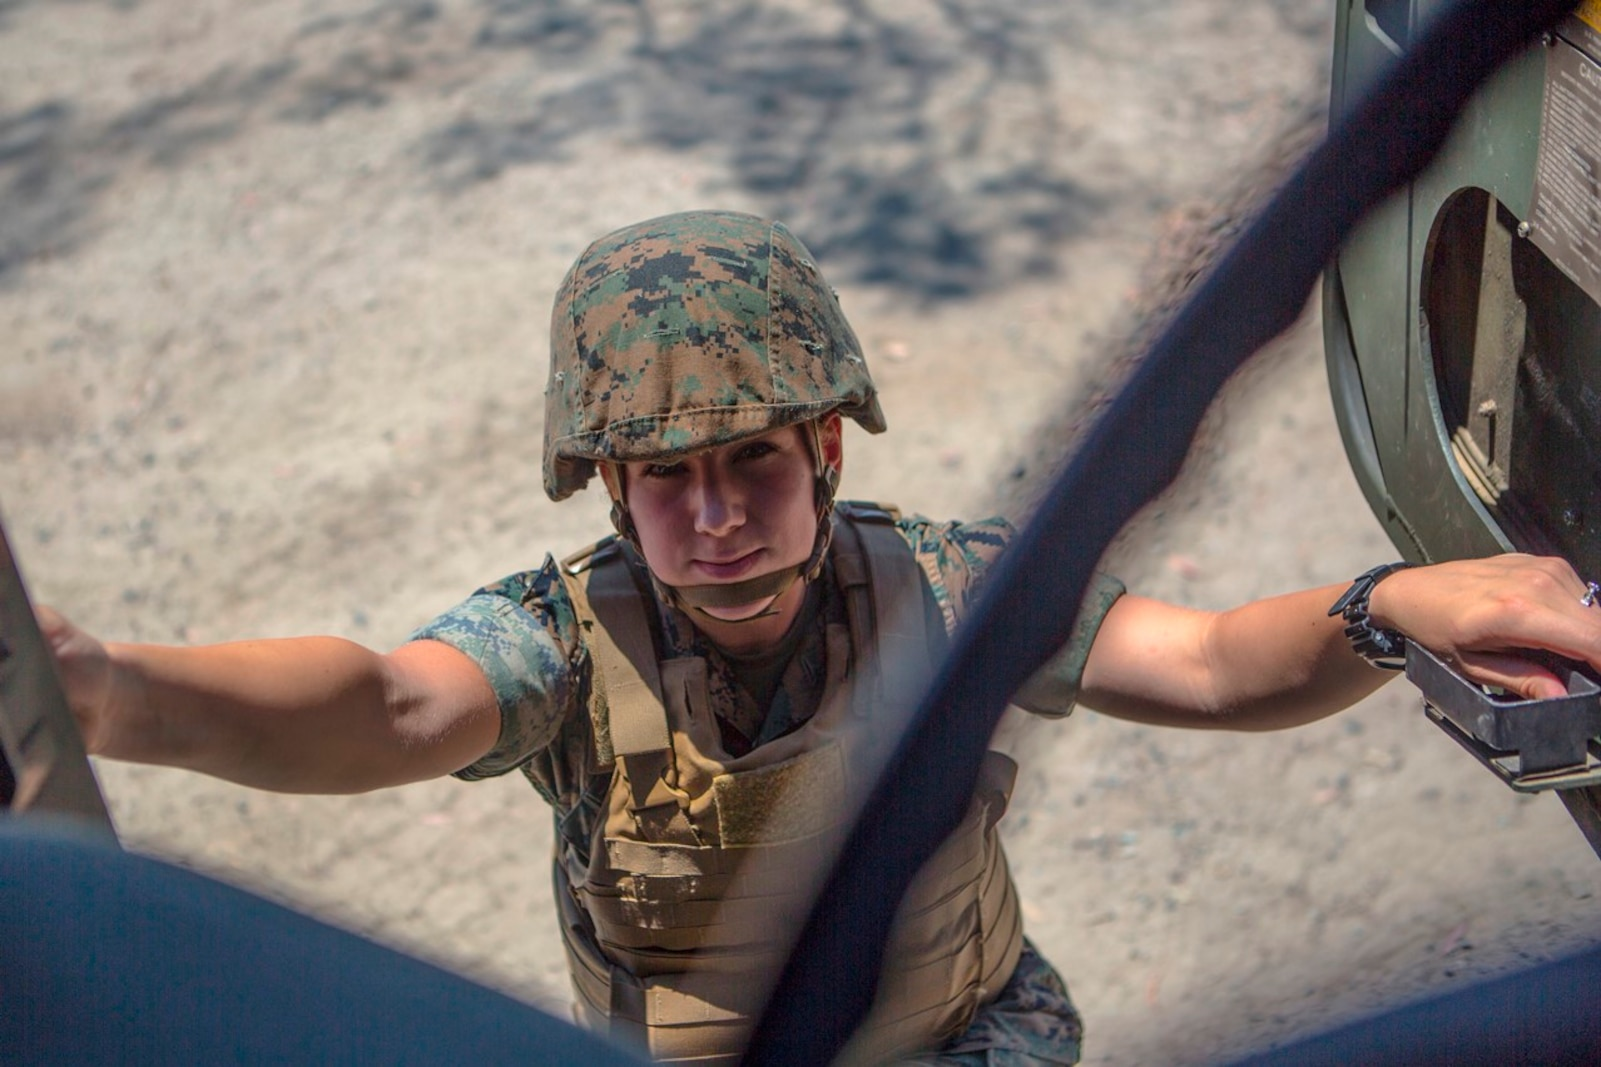 U.S. Marine Pfc. Heather Bartulewicz, a motor transport operator with Headquarters Regiment, 1st Marine Logistics Group, climbs into a Medium Tactical Vehicle Replacement MK23 truck as she prepares to transport mission essential gear from one location to the next on Camp Pendleton, Calif., June 20, 2017. Motor Transport operators maintain and operate both commercial and tactical vehicles and are responsible for the transportation of everything from supplies and resources, to Marines and their equipment. (U.S. Marine Corps photo by Lance Cpl. Joseph Sorci)